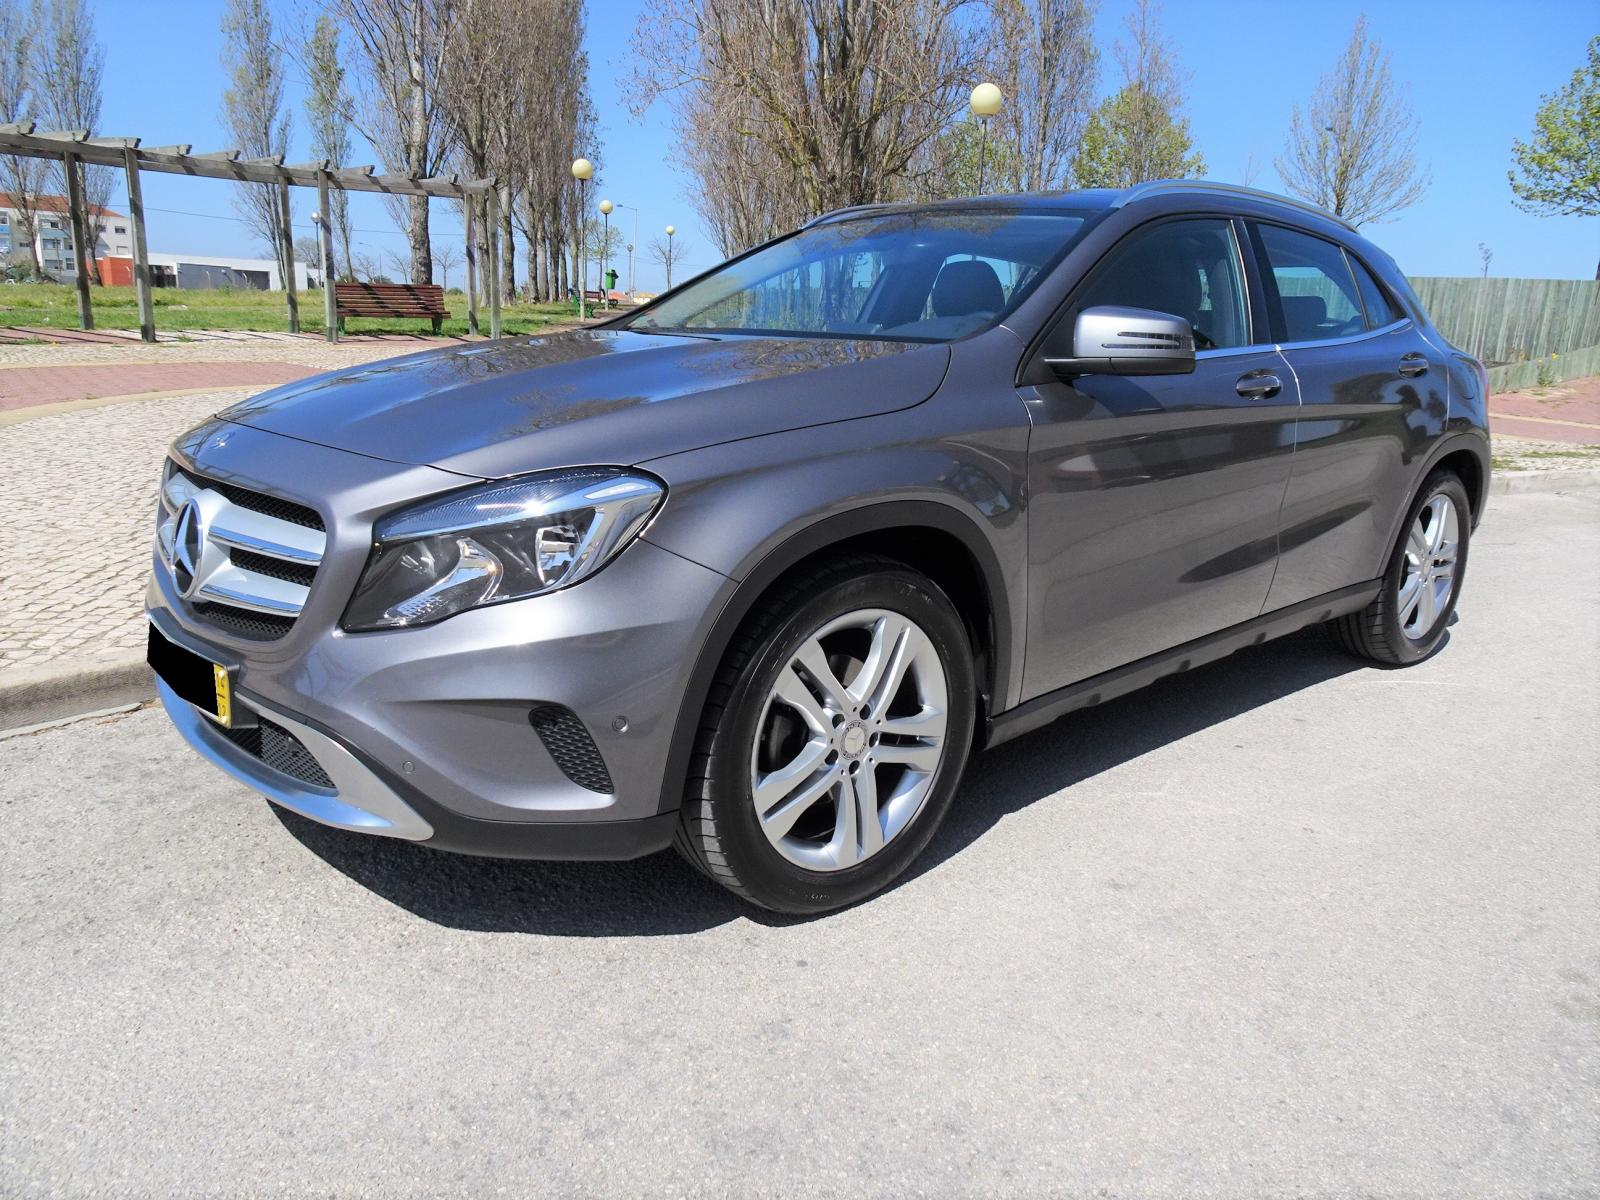 Mercedes-Benz-GLA 200 CDI Urban